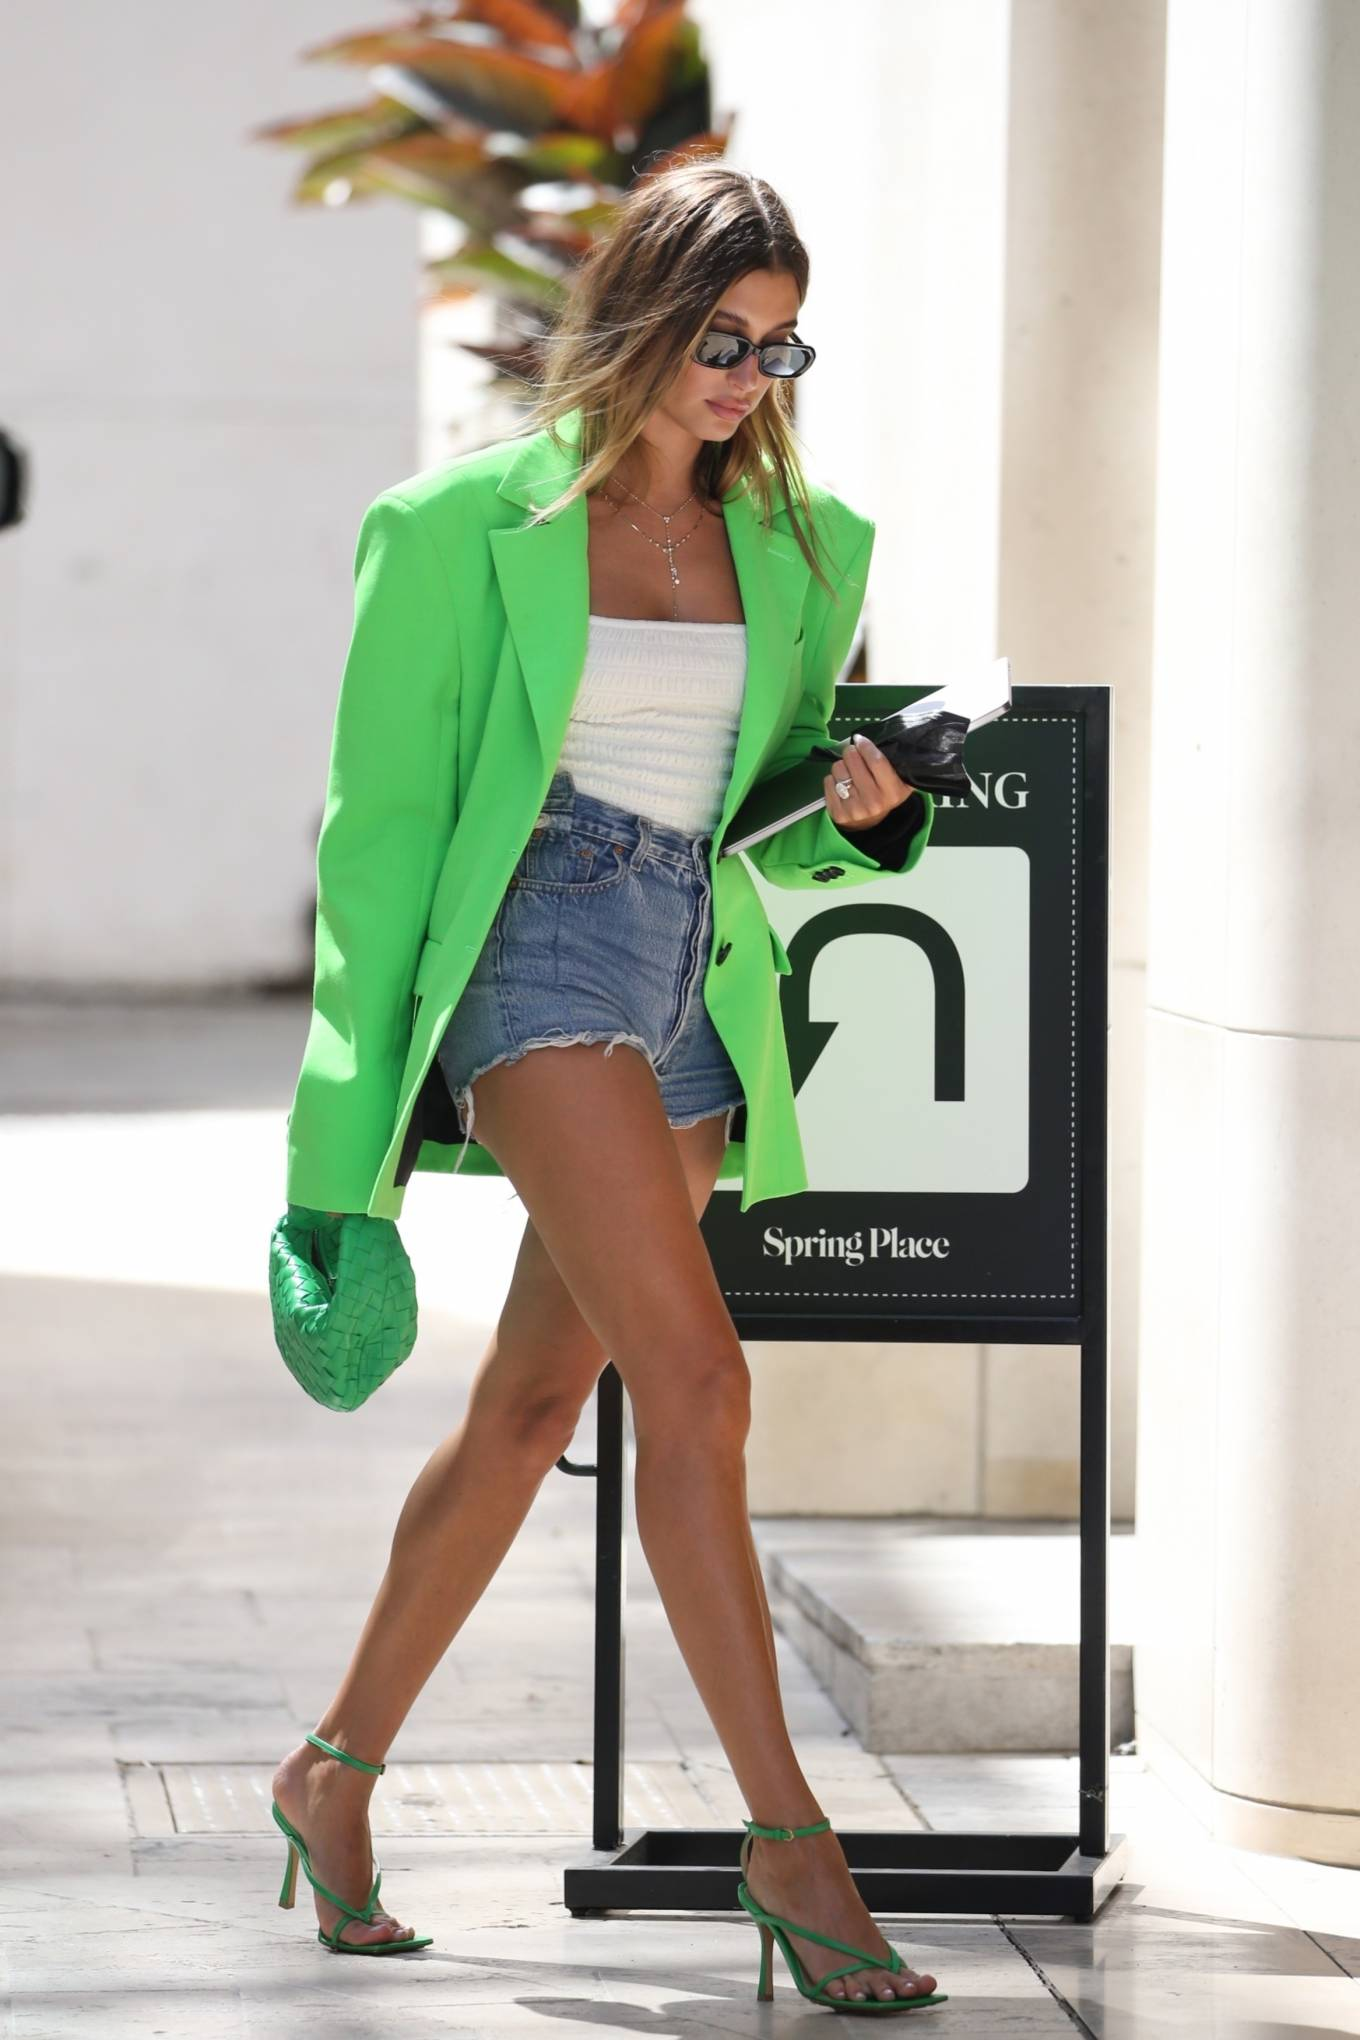 Hailey Bieber rocking square green Bottega Veneta ankle sandals with high heel and thin straps